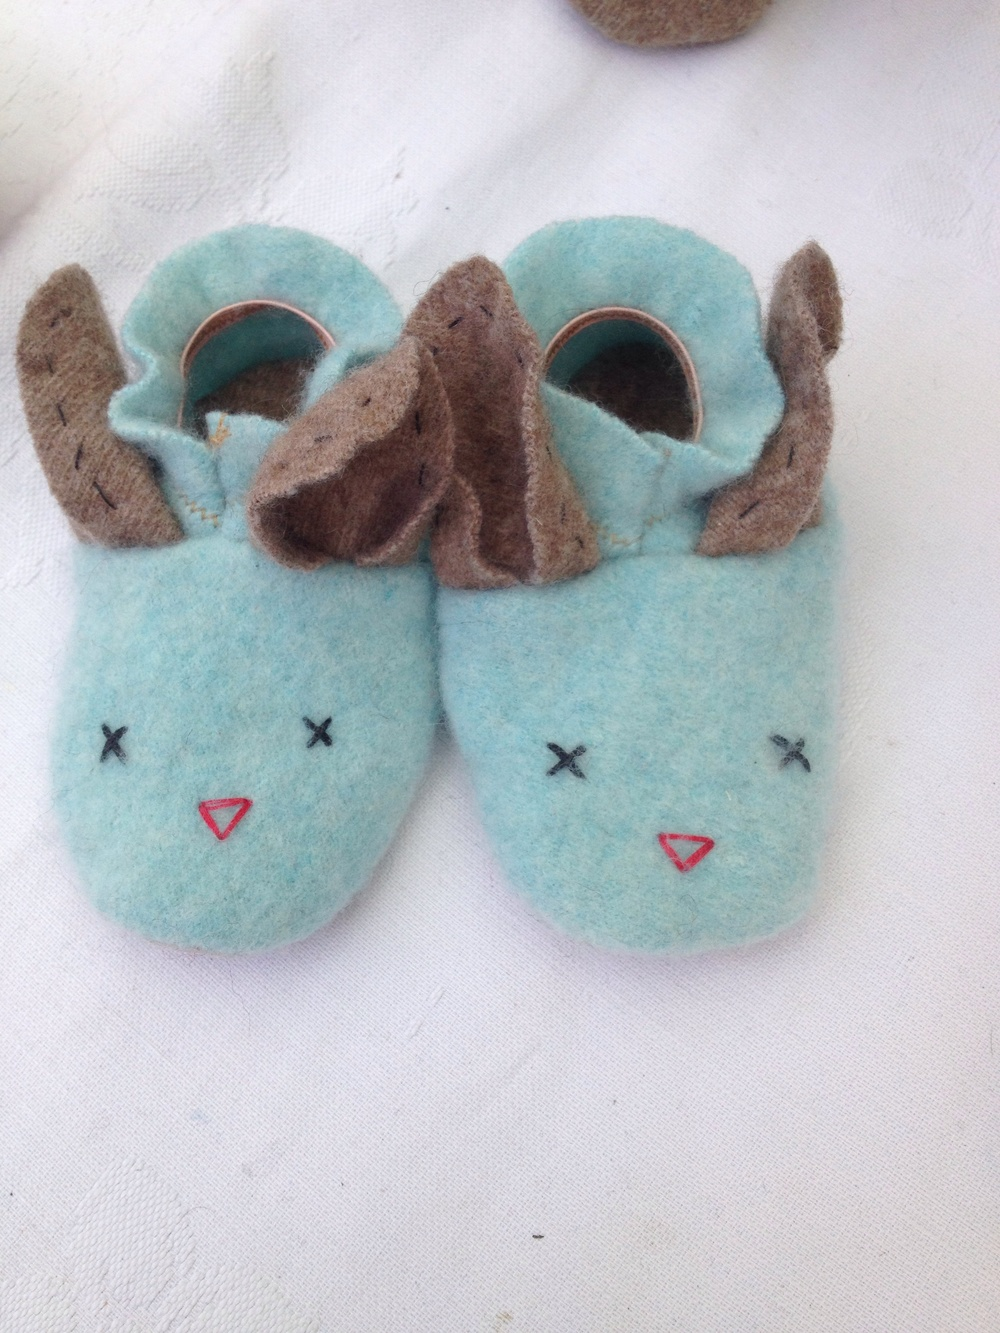 Blue cashmere bunny slippers.